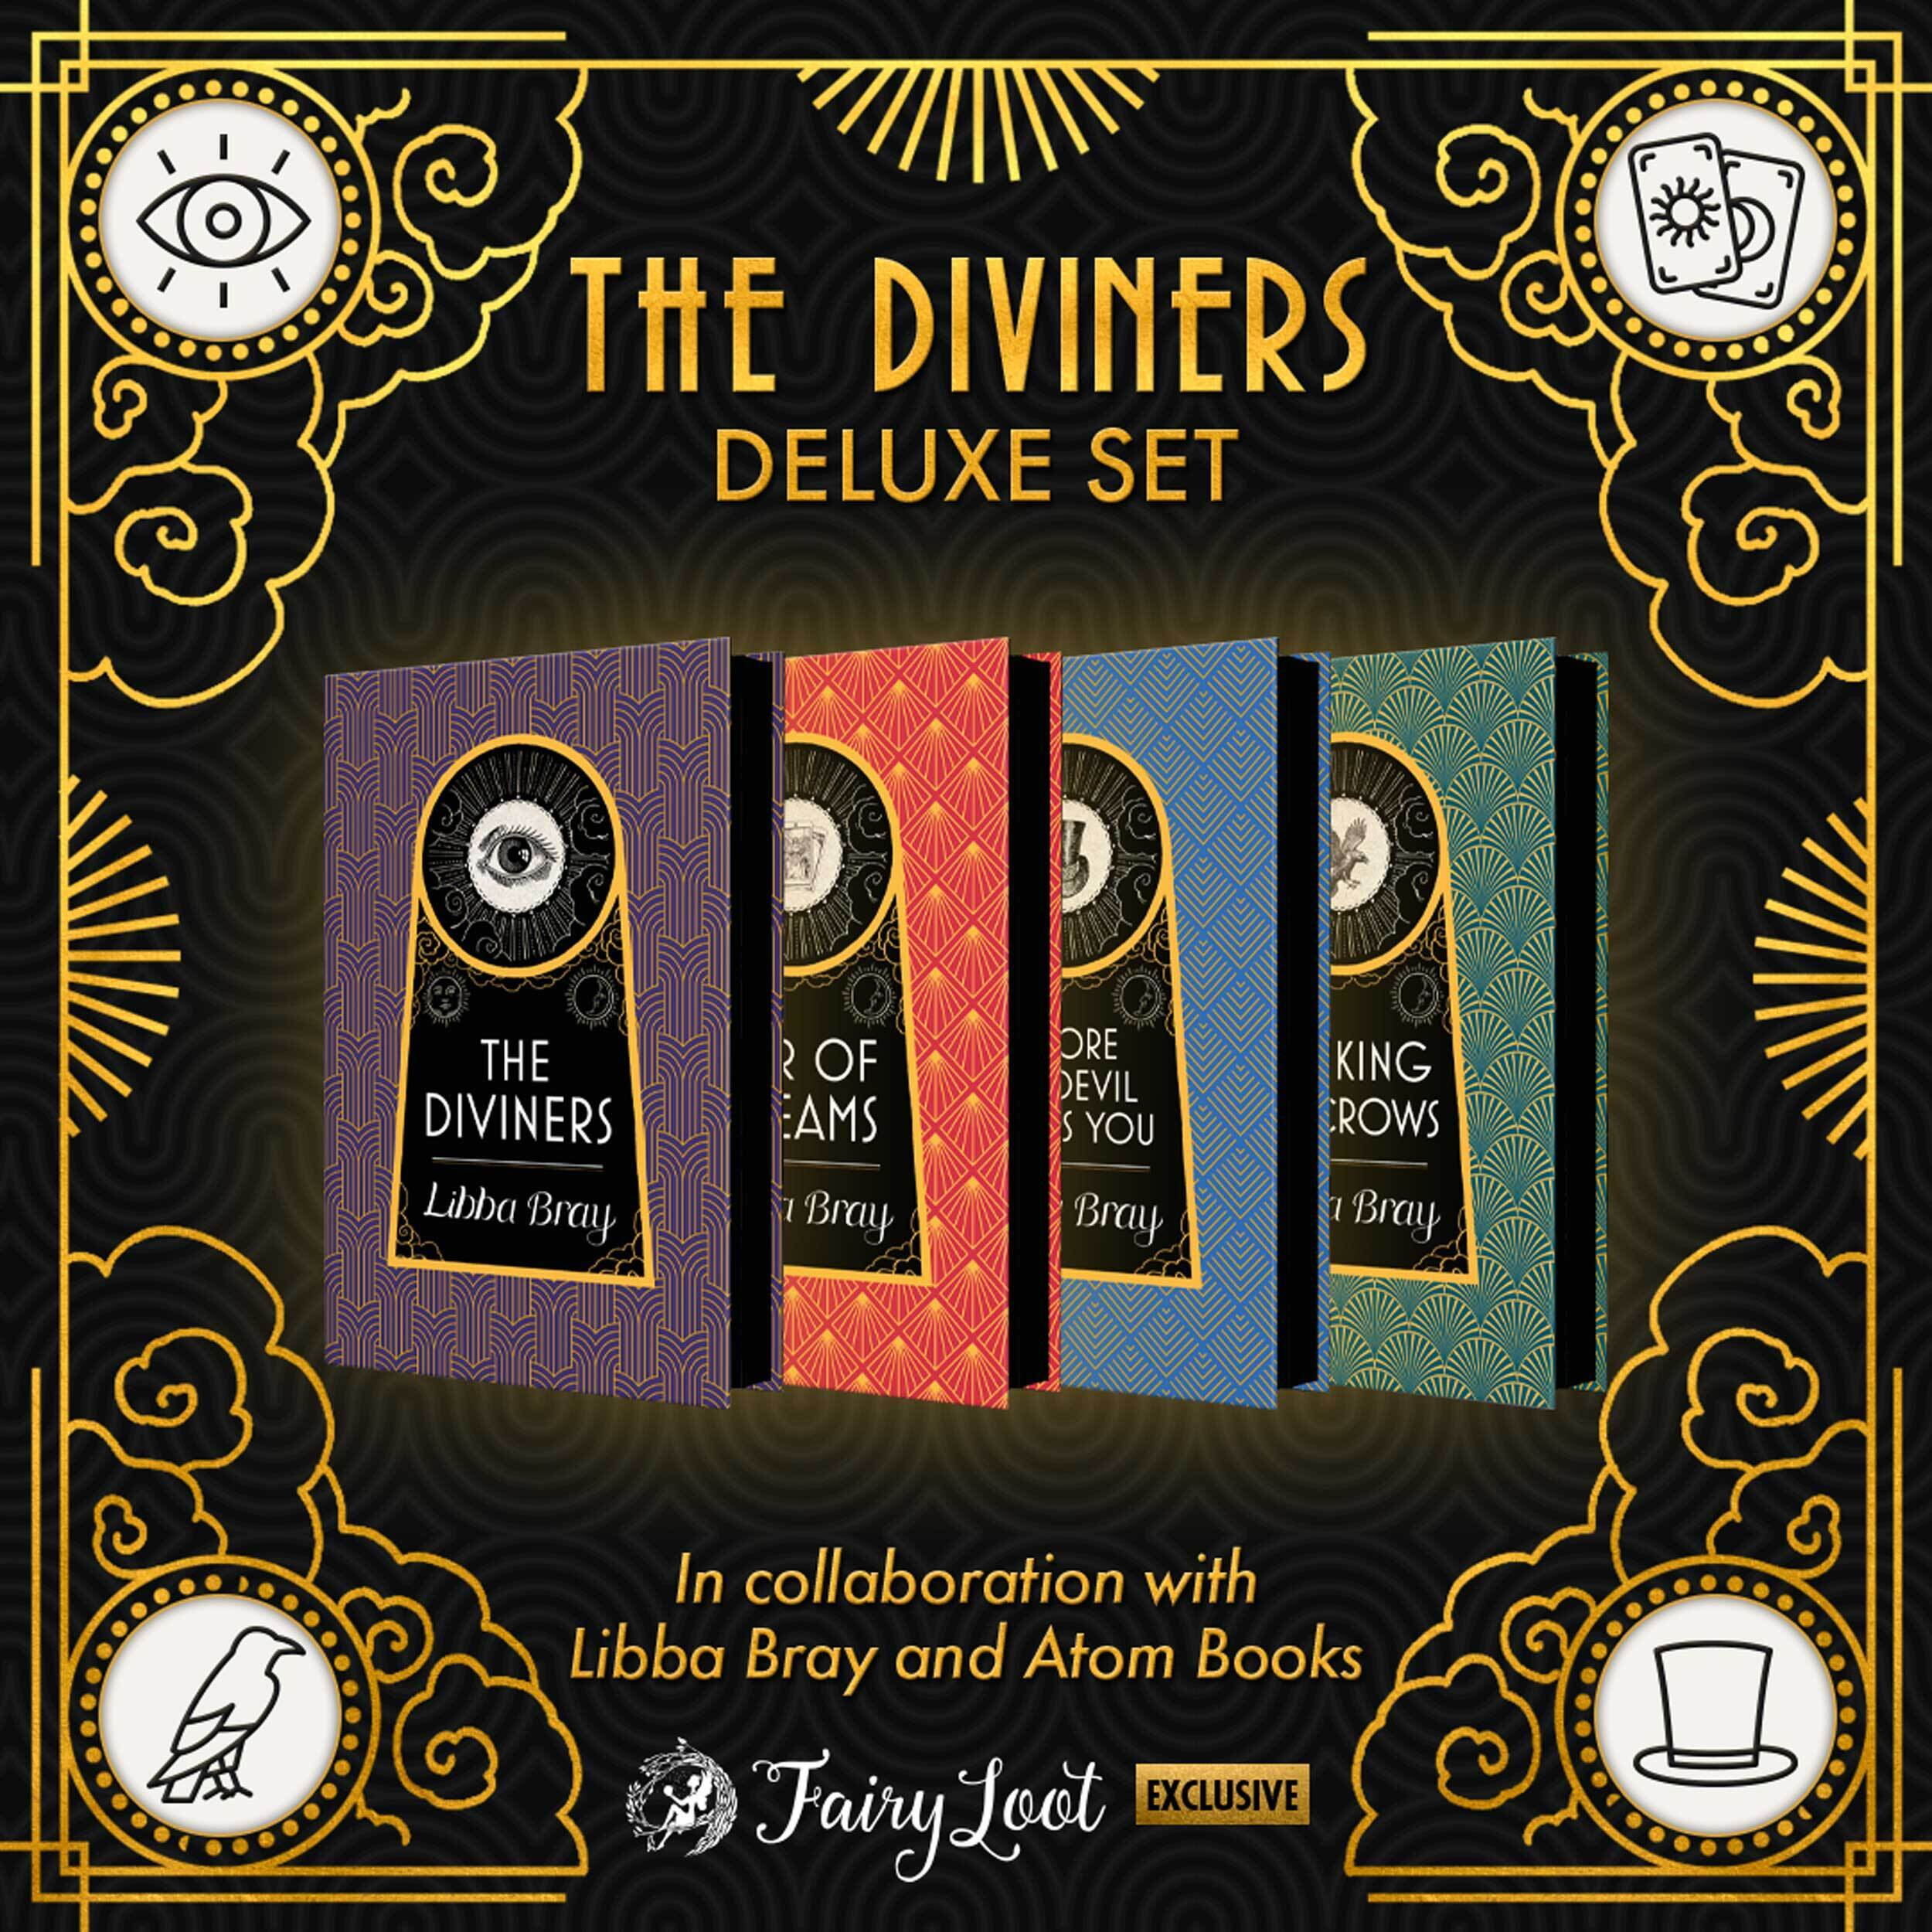 The Diviners DELUXE SET